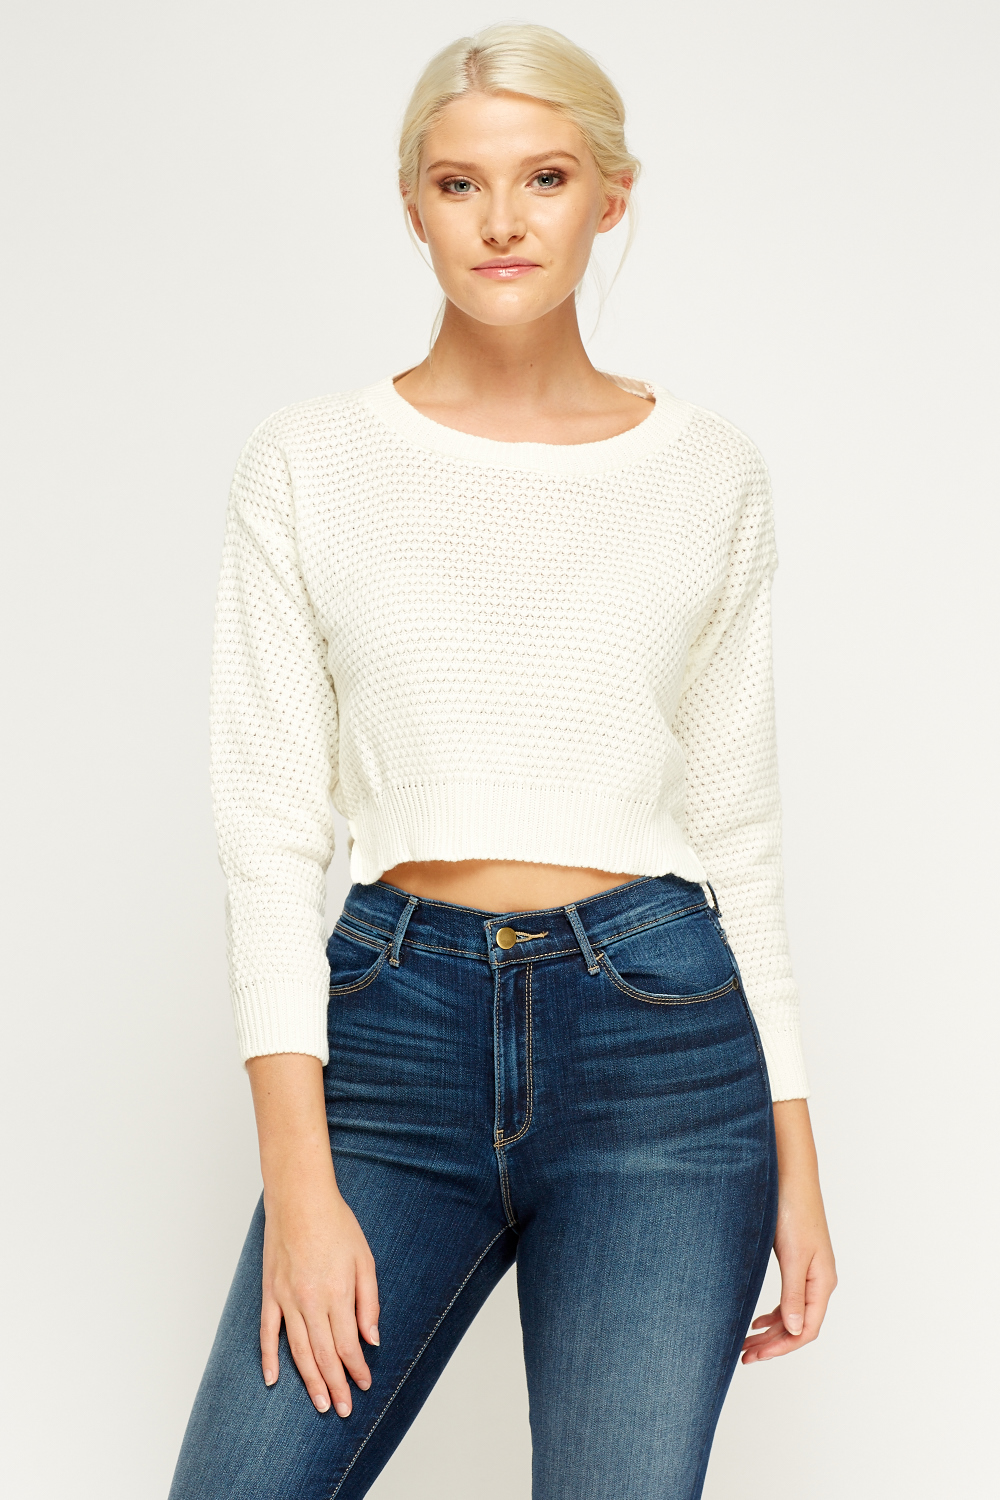 Cropped Jumper Knitting Pattern : Knitted Cropped Cream Jumper - Just ?5